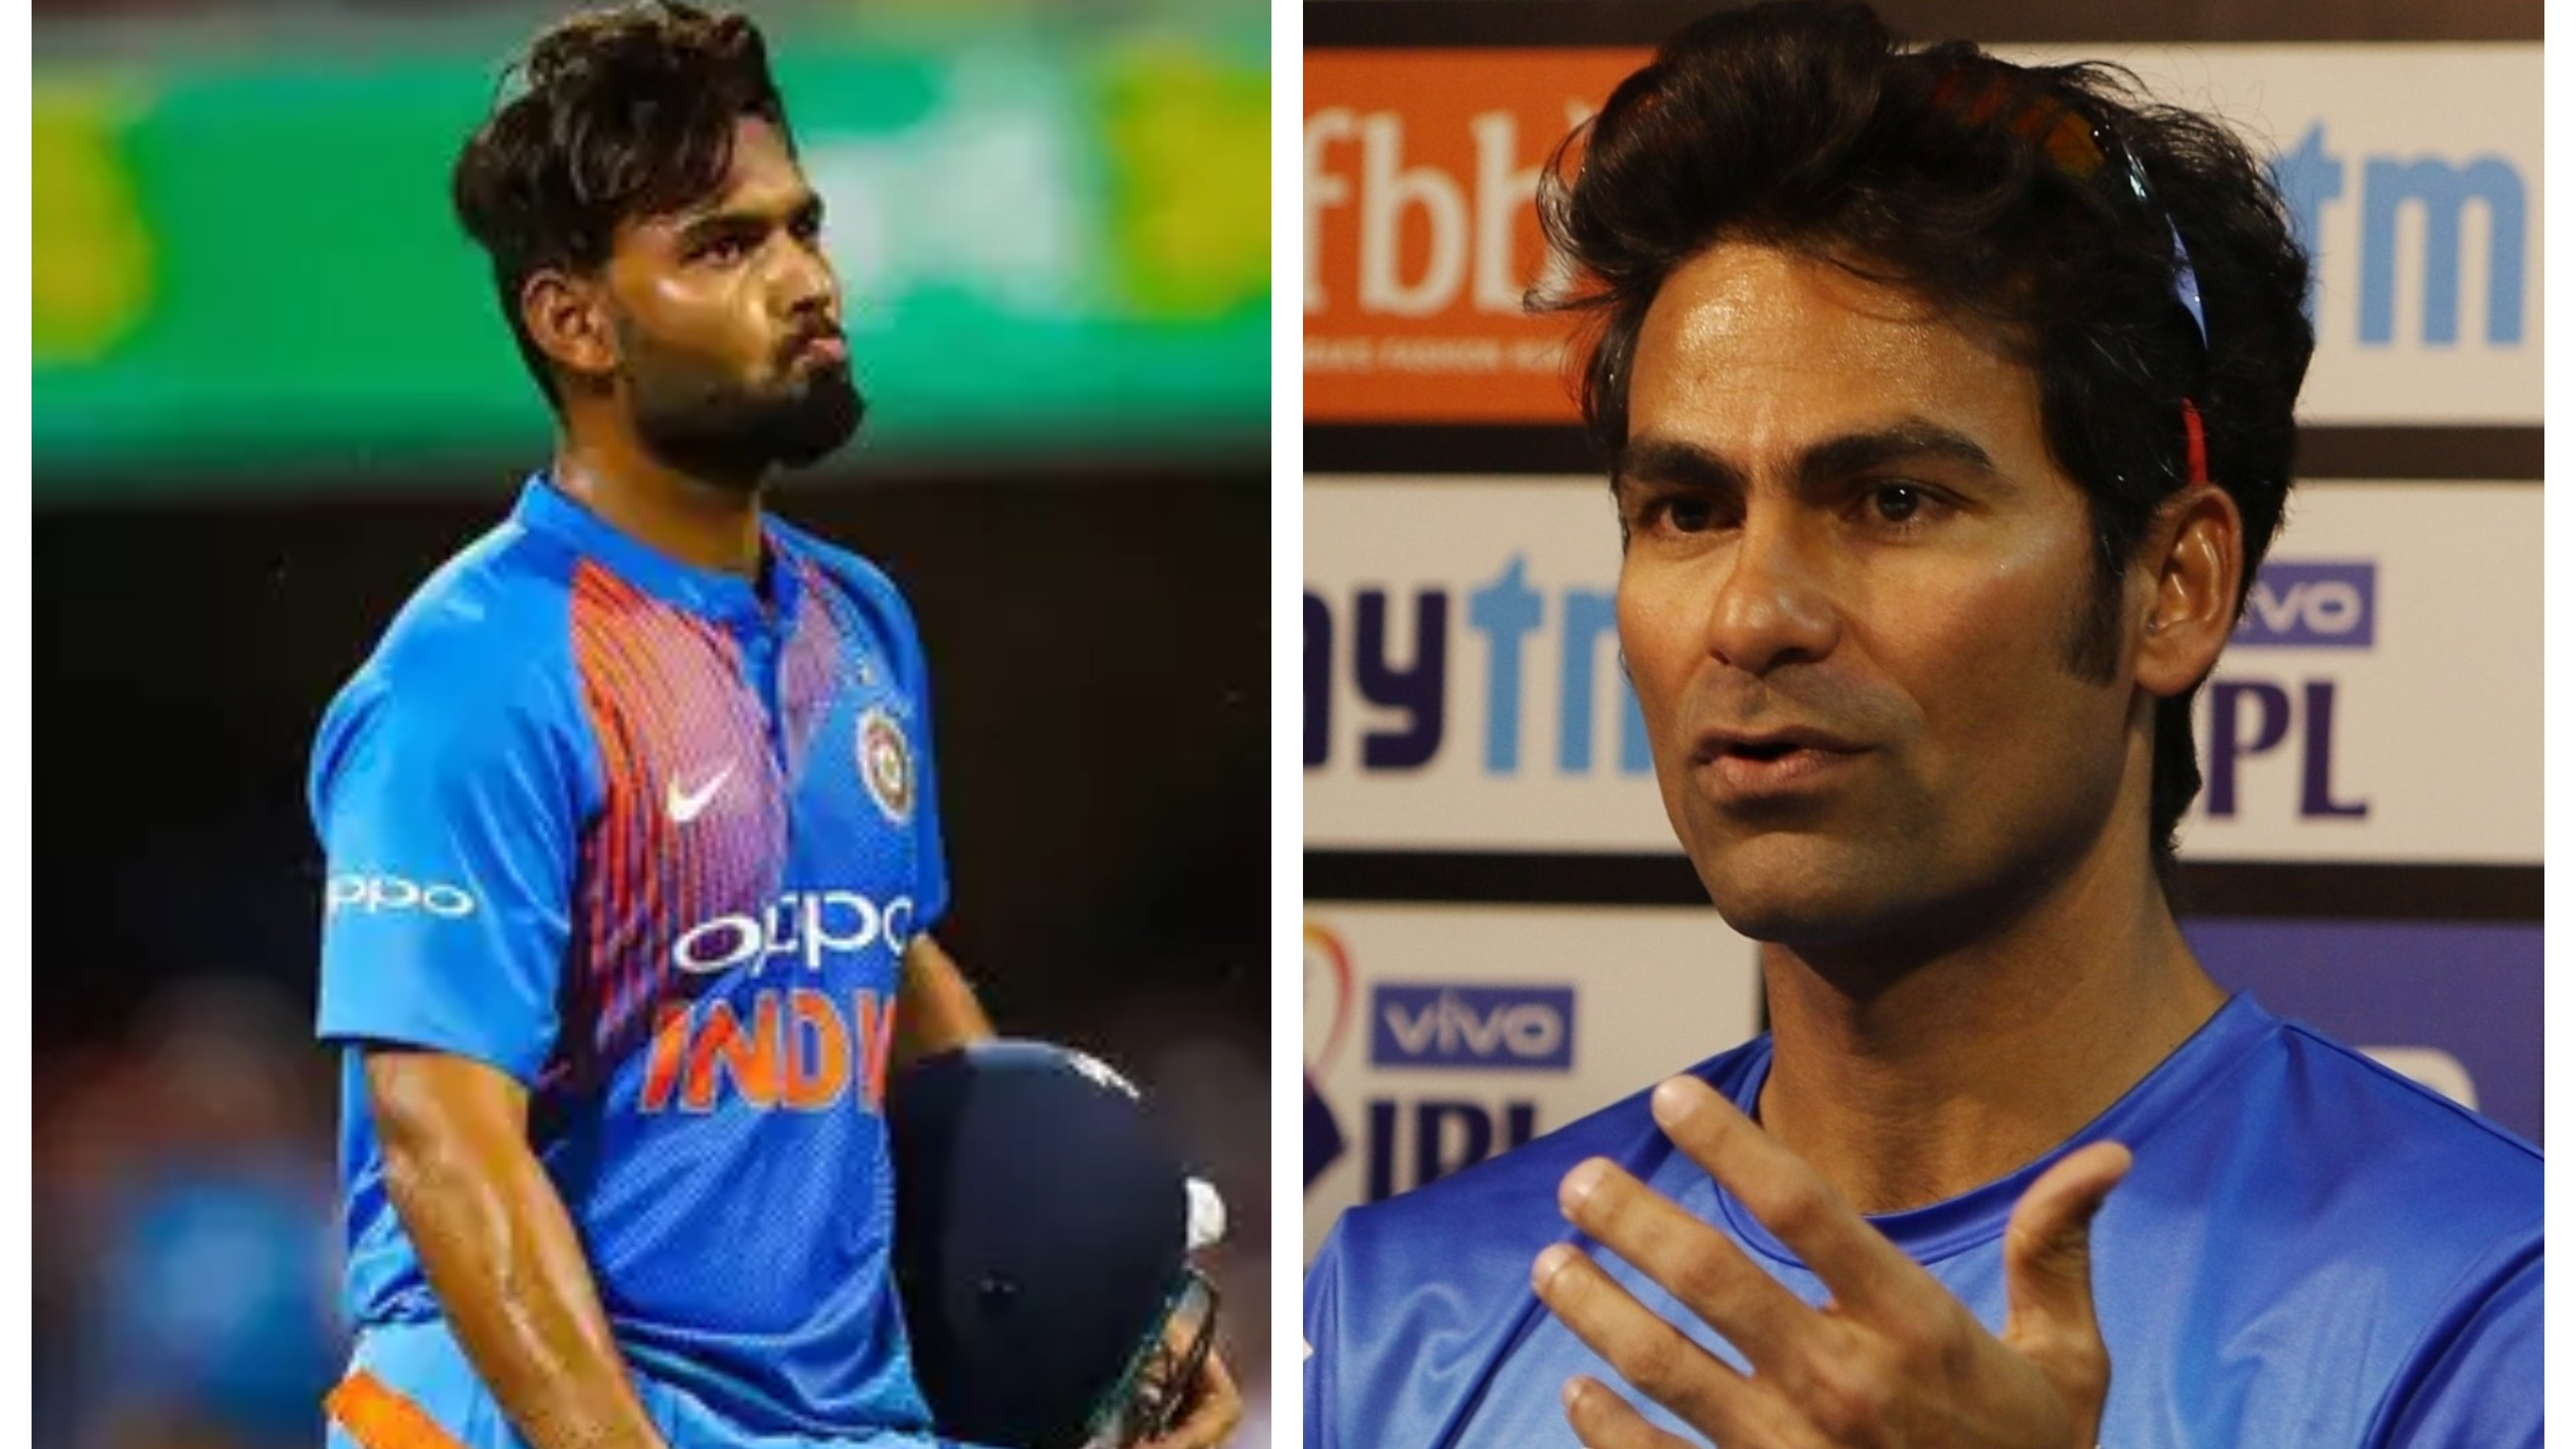 WATCH: 'Indian team is not able to find an ideal batting spot for Rishabh Pant' – Mohammad Kaif